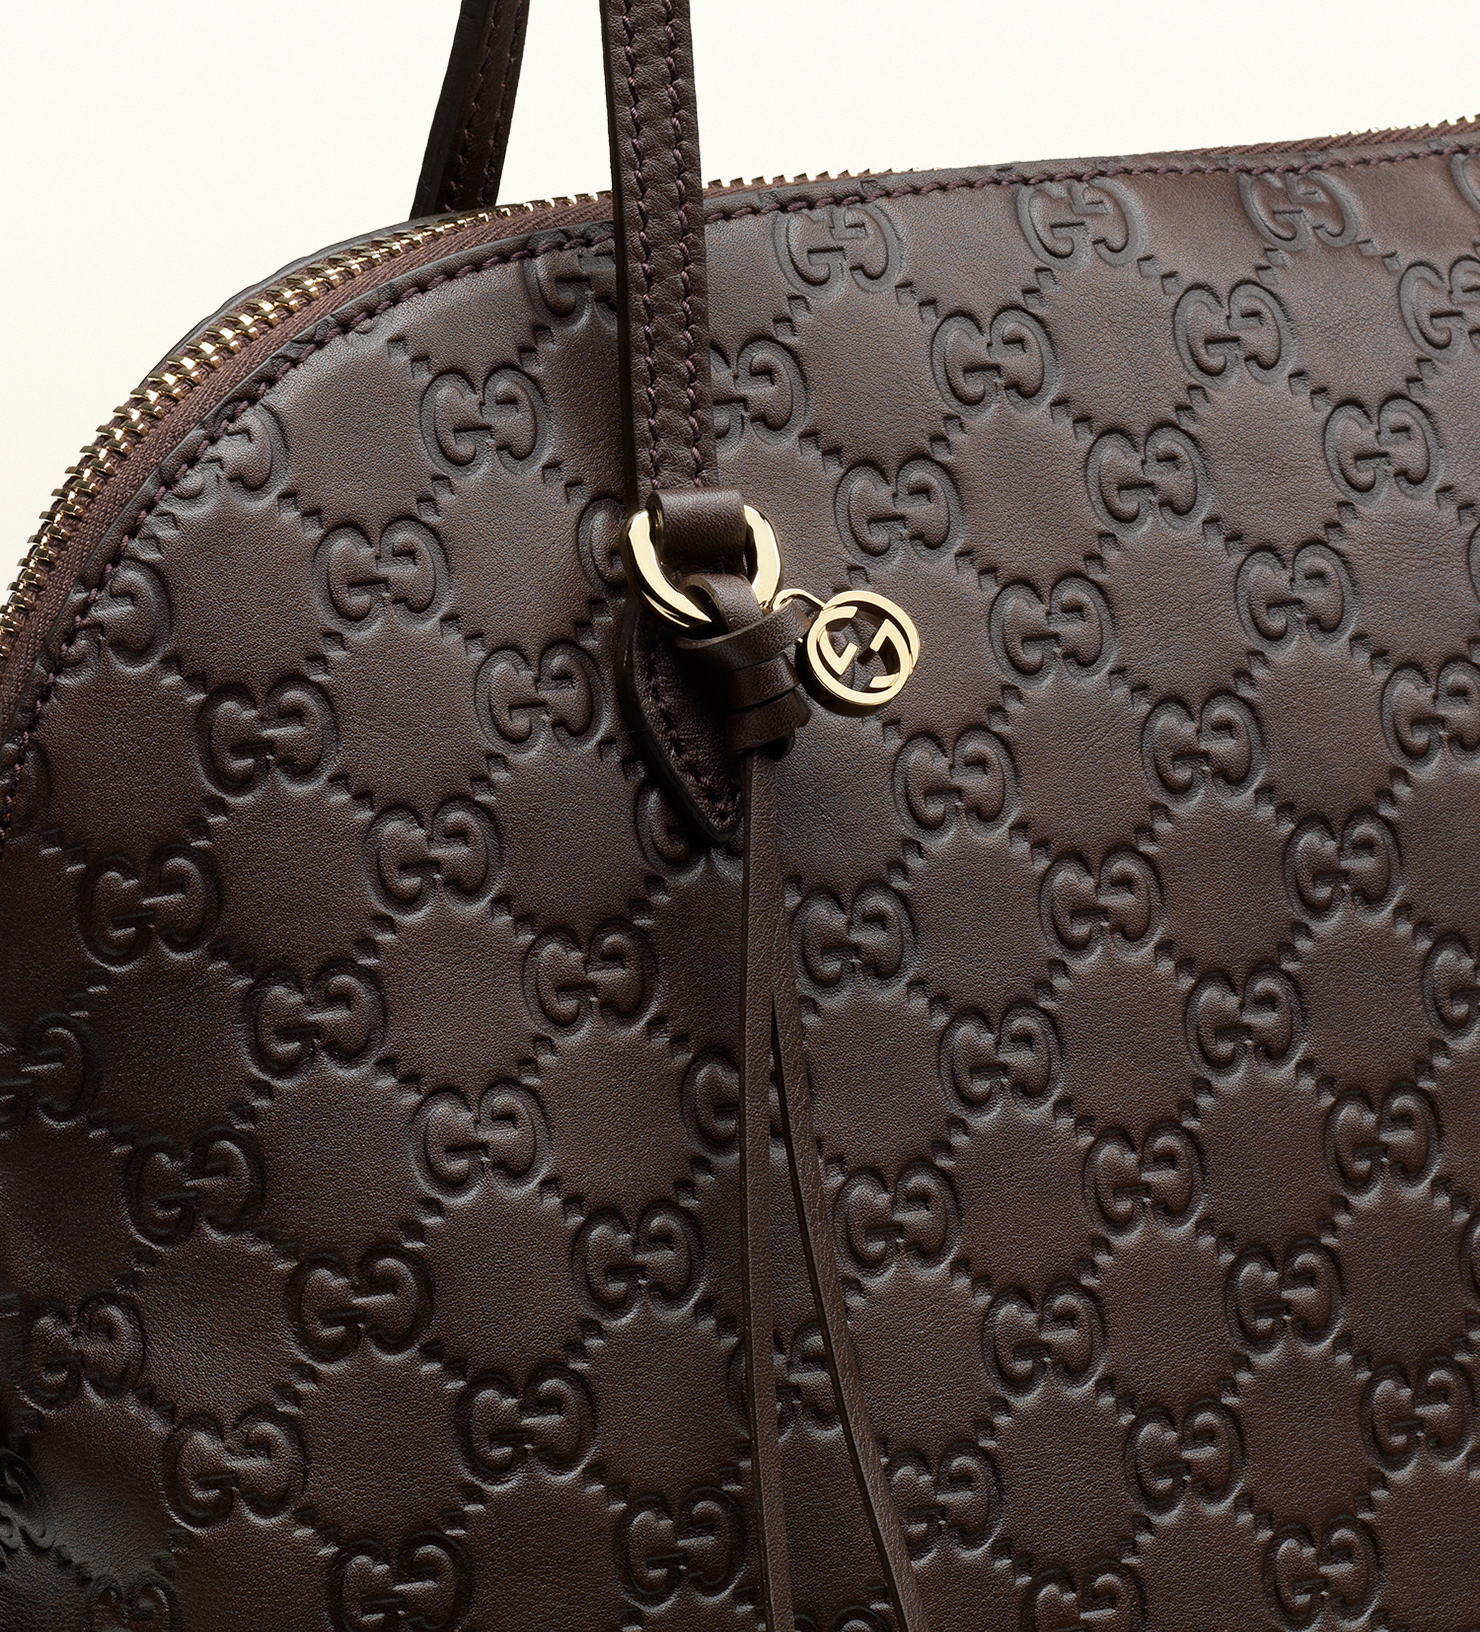 e62df57d0 Gucci Bree Ssima Leather Shoulder Bag in Brown - Lyst